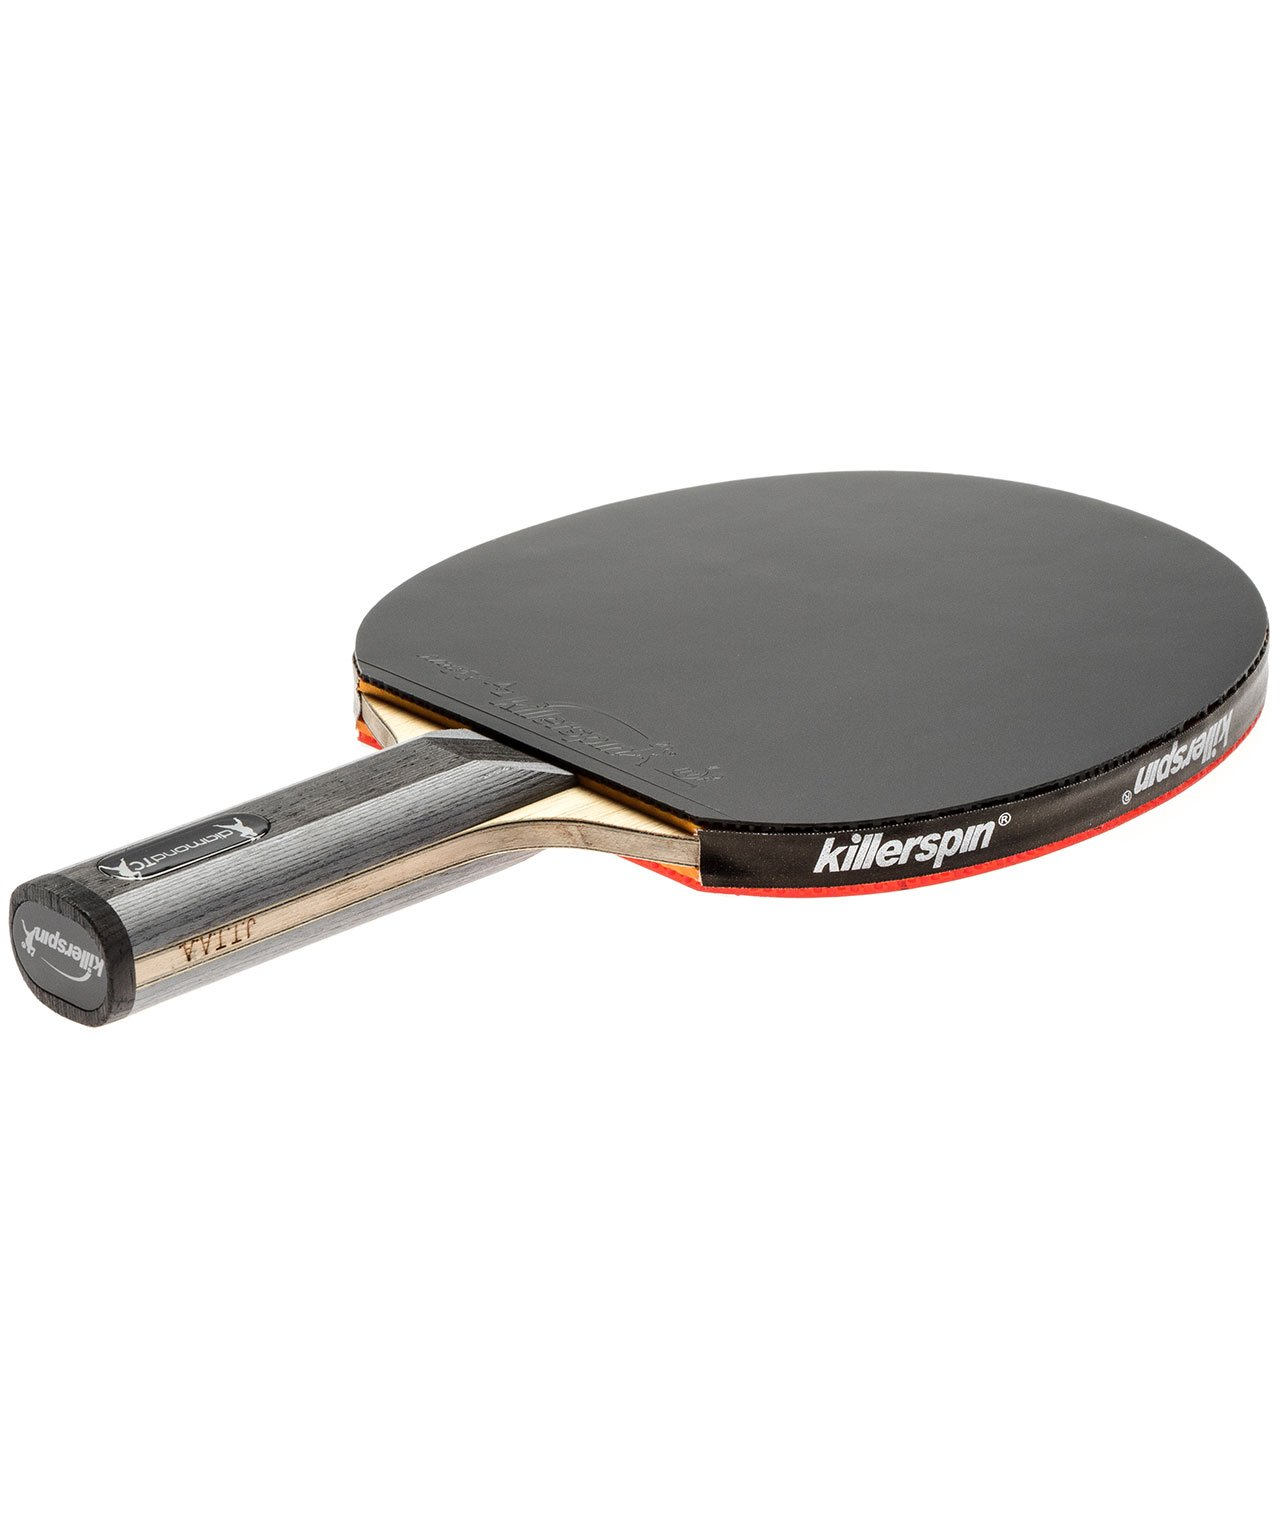 Killerspin Ping Pong Paddle Diamond TC - Straight Black Rubber